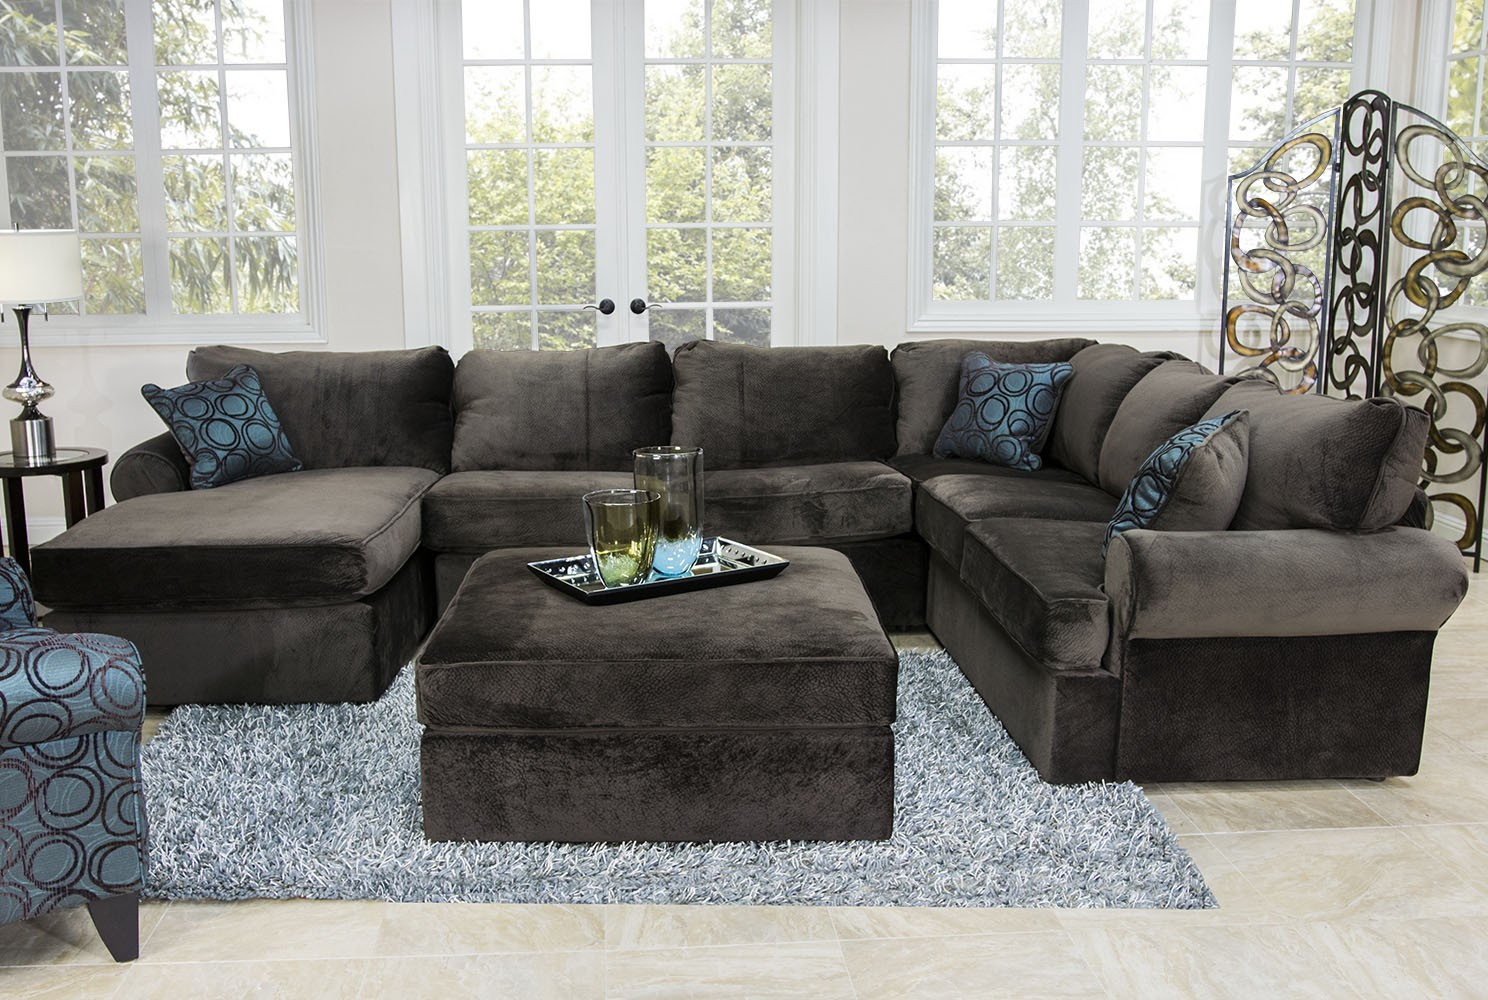 Sofa Set For Drawing Room With Price Mor Furniture Living Room Sets Roy Home Design